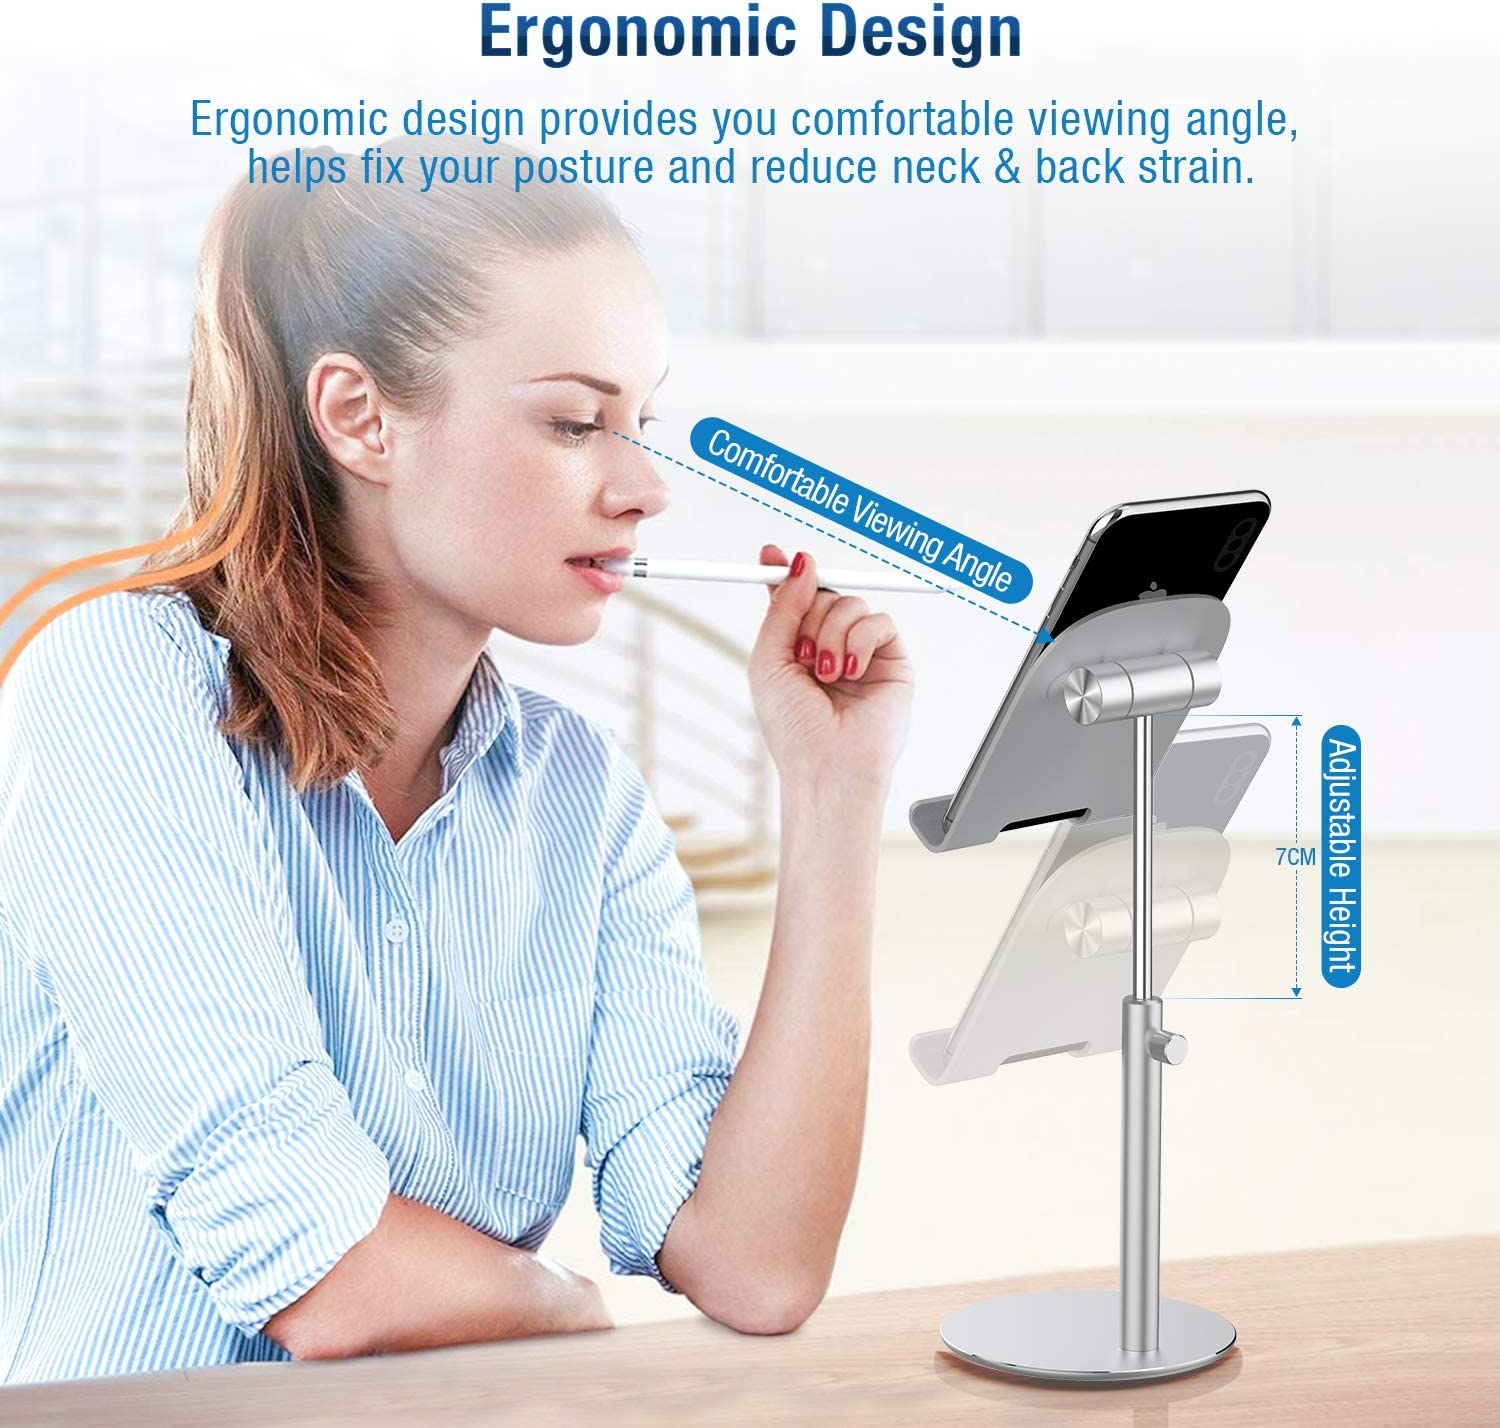 Desktop Cell Phone Stand Cradle Dock for Work Study Strong Stability Compatible with All Mobile Phones,iPad,Kindle,Tablet Angle Height Adjustable LUROON Phone Stand /& Tablet holder Black